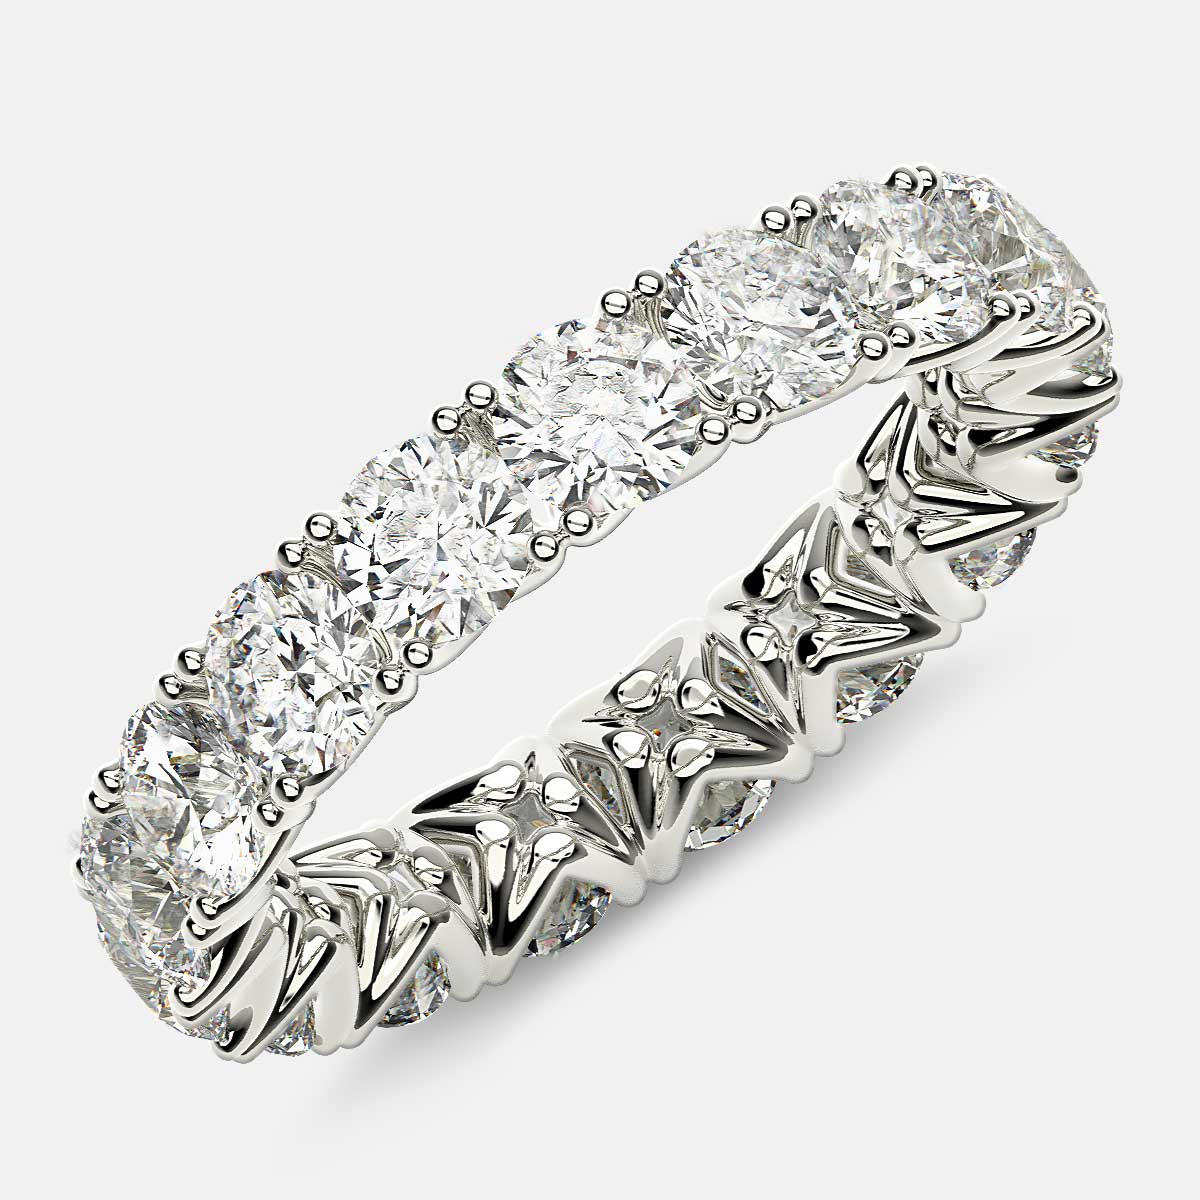 Curved V-Prong Eternity Ring with Round Diamonds in 18k White Gold